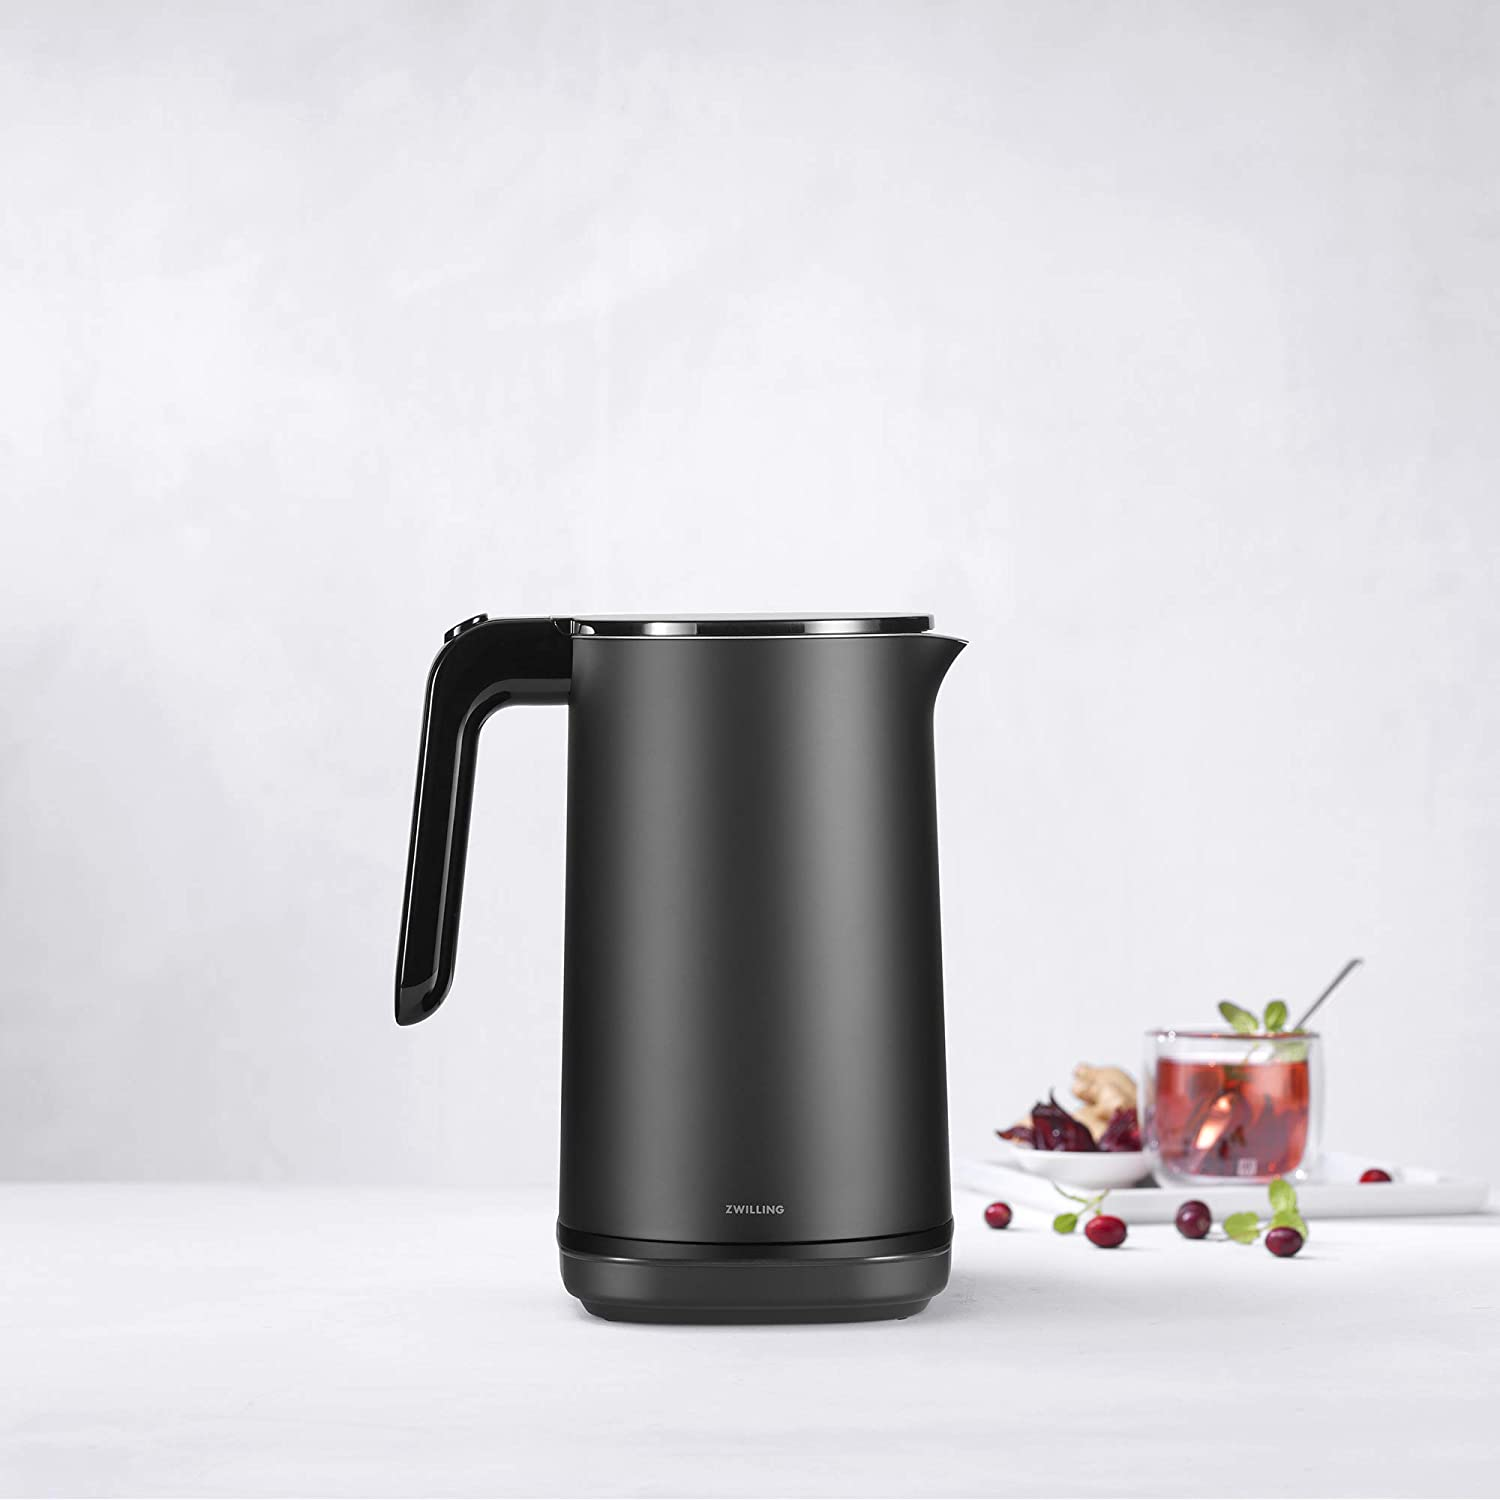 Zwilling Enfingy Cool Touch Cordless Kettle